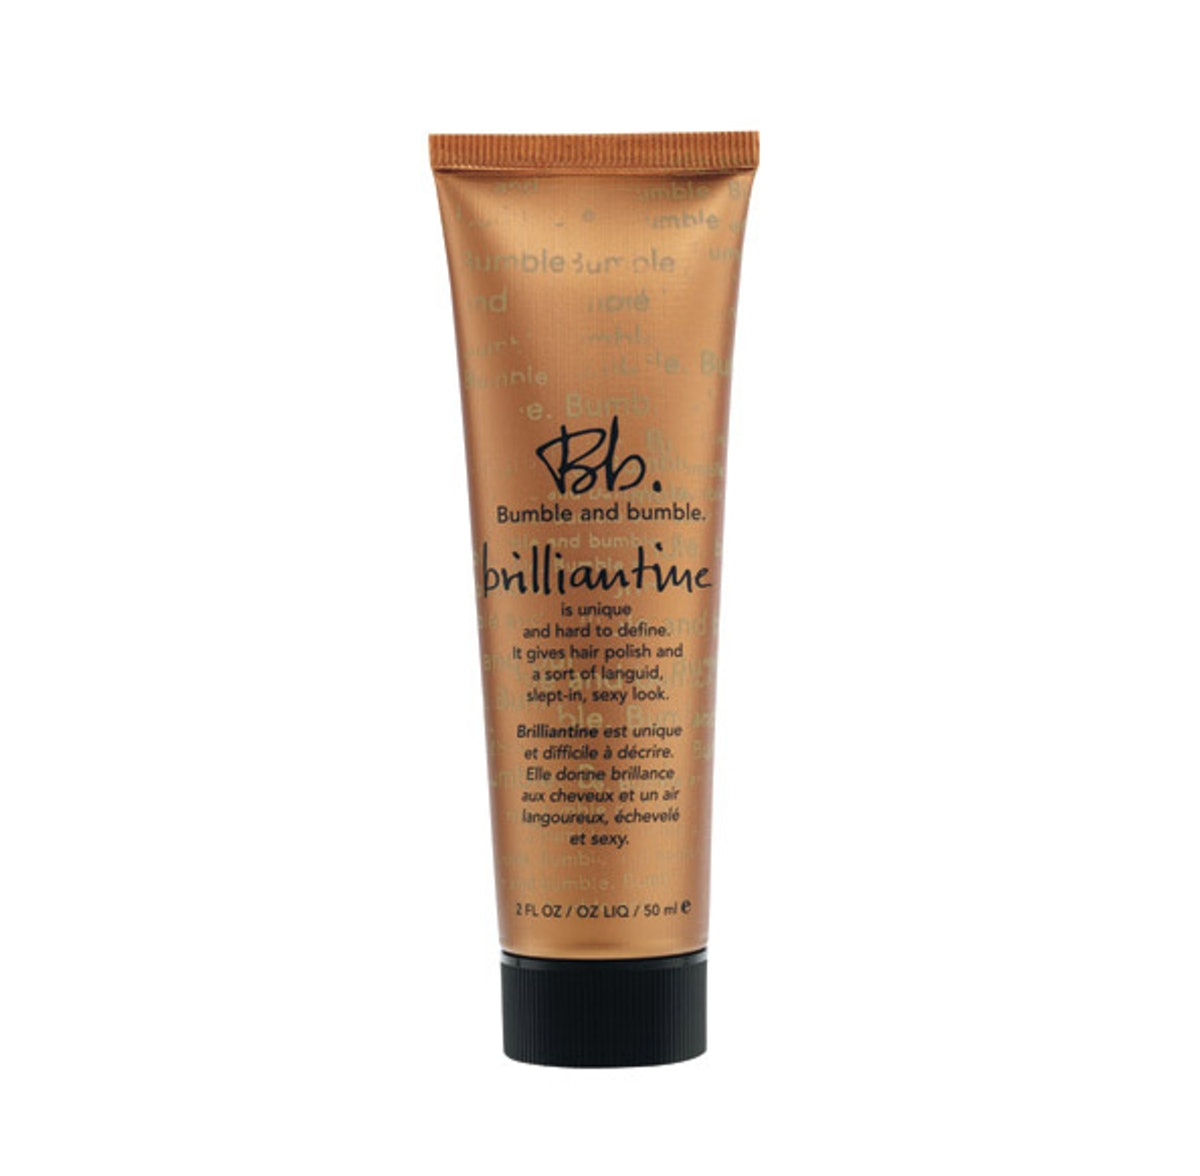 products-for-natural-hair-look-04